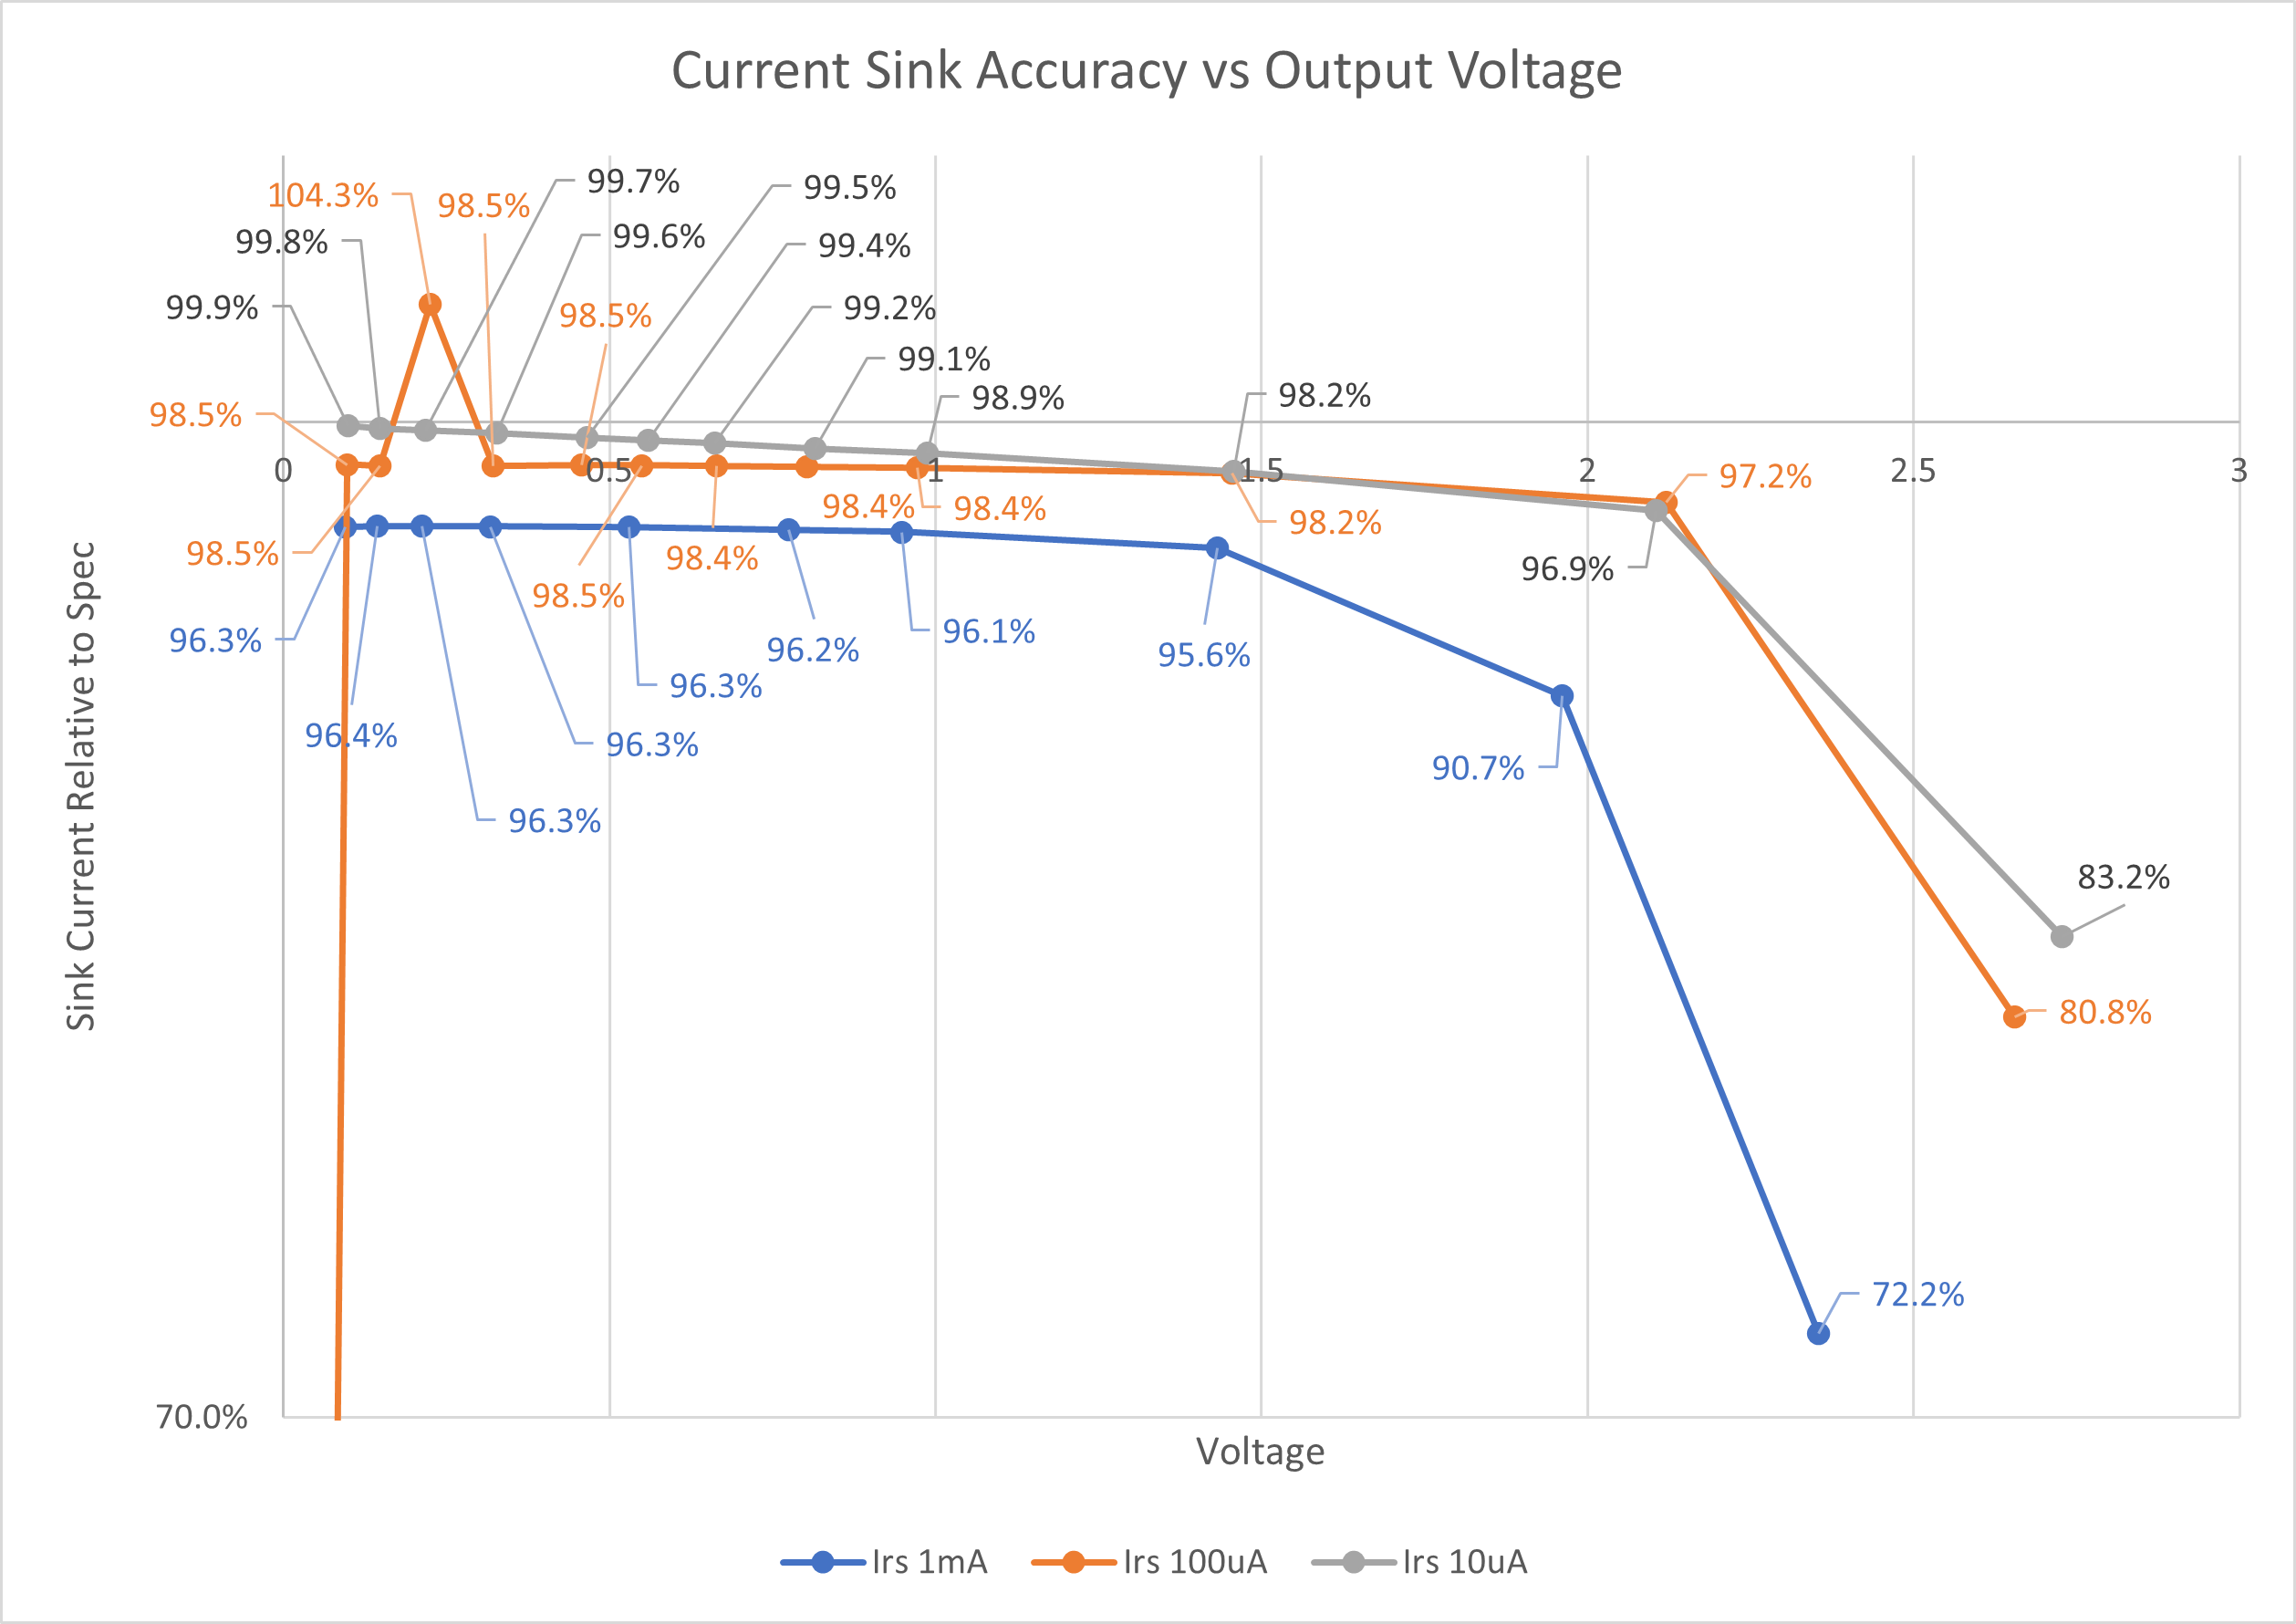 Current Sink Accuracy vs Voltage